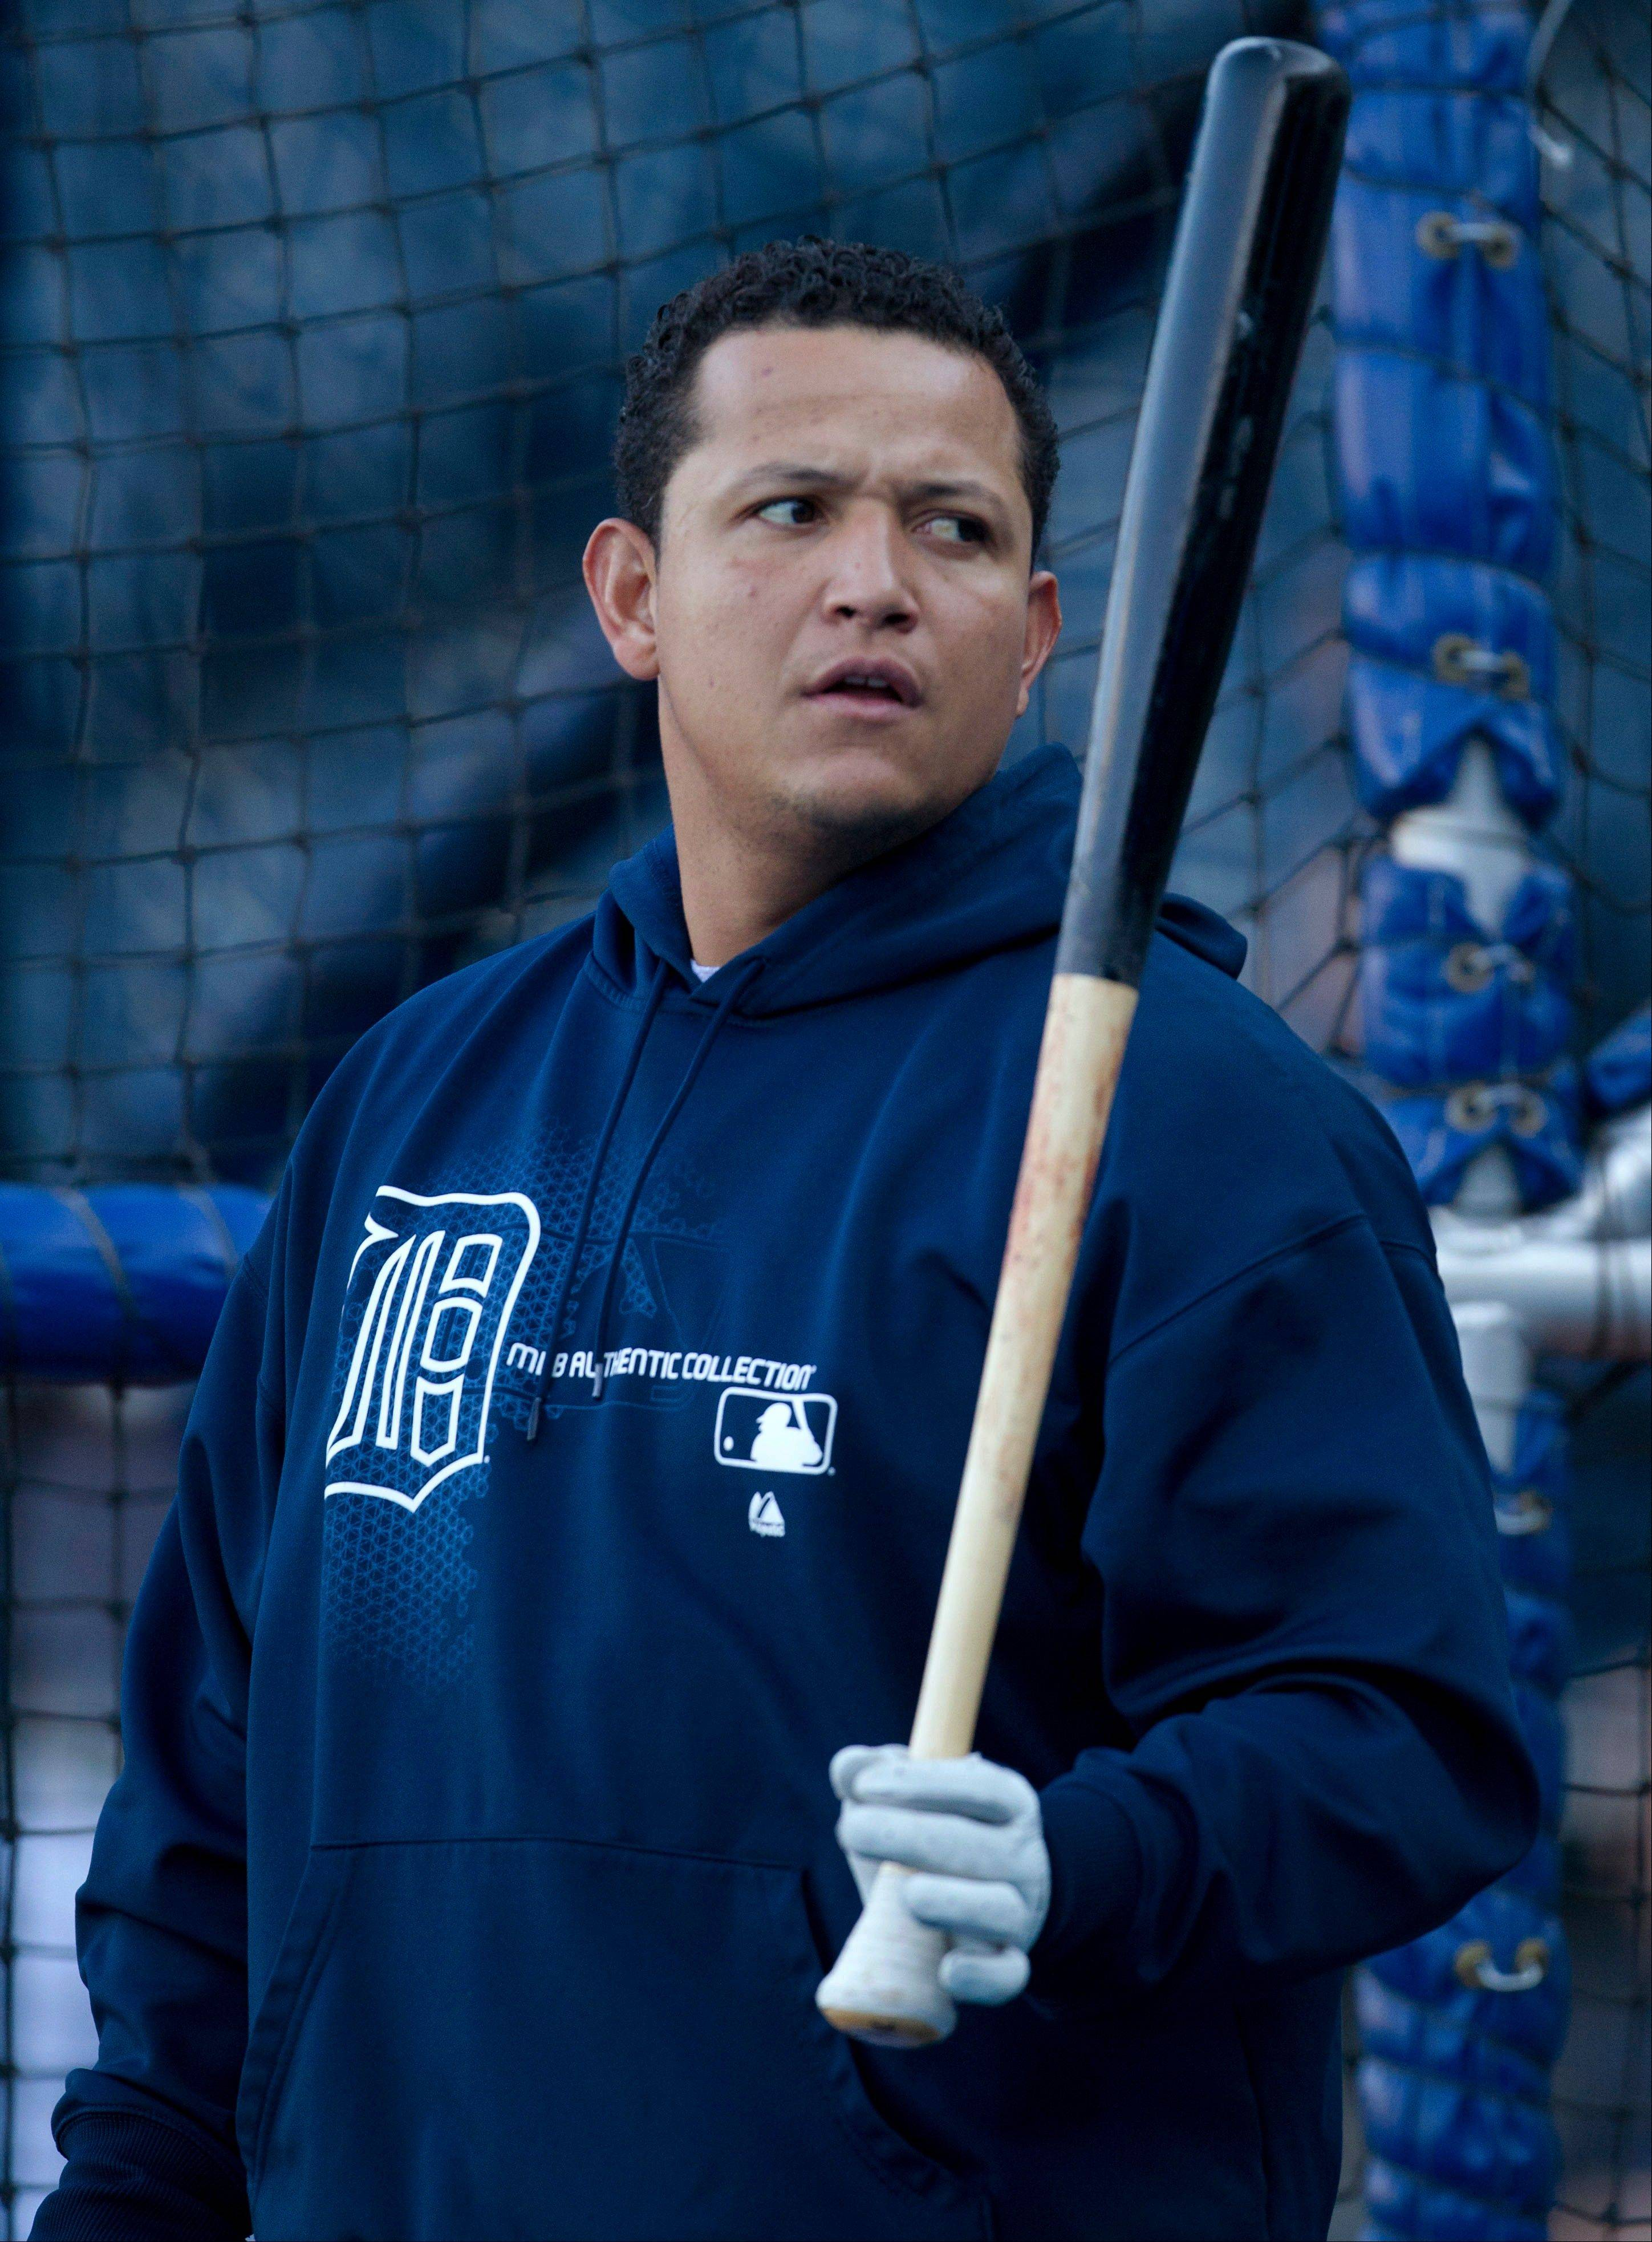 Detroit Tigers third baseman Miguel Cabrera is in the lineup for today's finale against the Kansas City Royals.